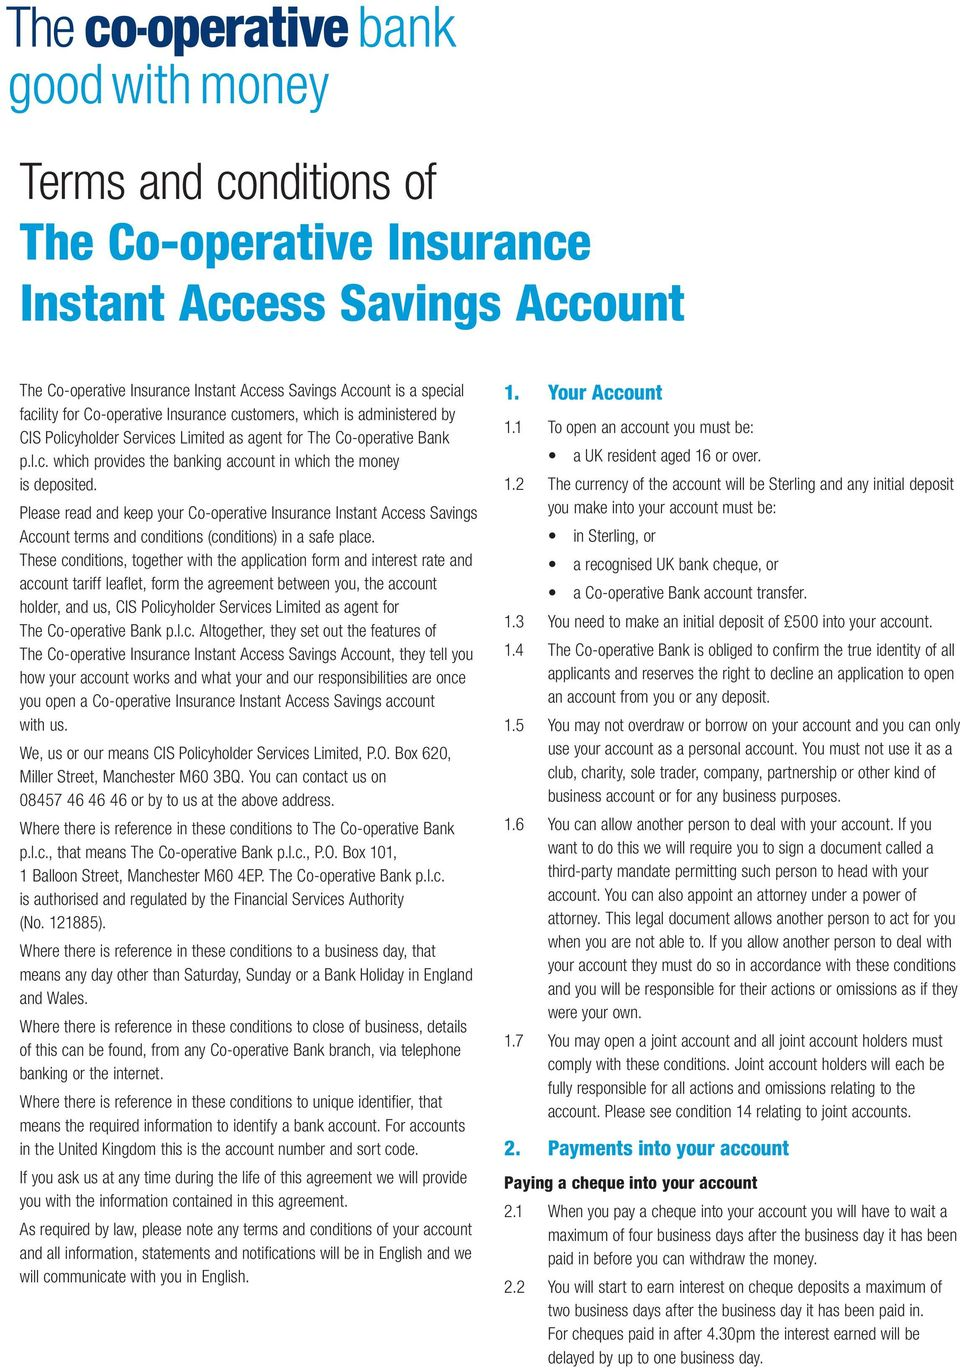 Please read and keep your Co-operative Insurance Instant Access Savings Account terms and conditions (conditions) in a safe place.